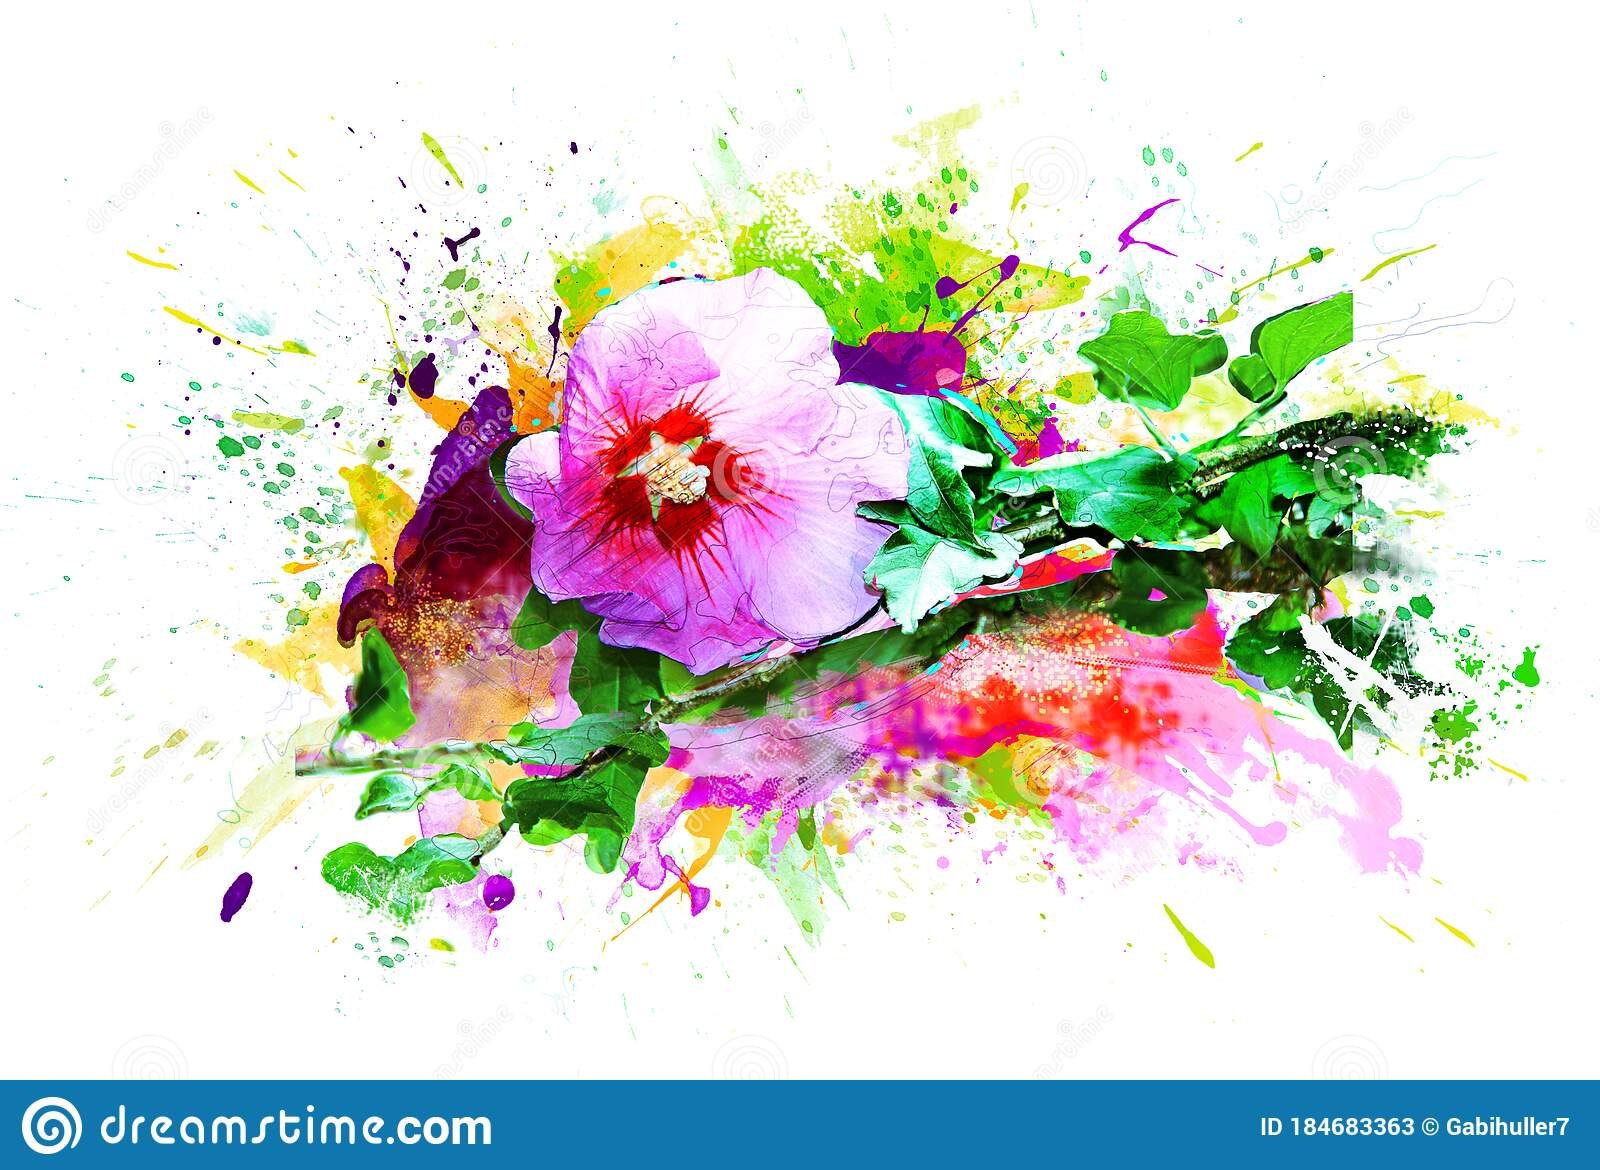 Hibiscus Flower Abstract Pink Green Watercolor Art Illustration Isolated White Background Stock Image Image Of Isolated Aquarell 184683363